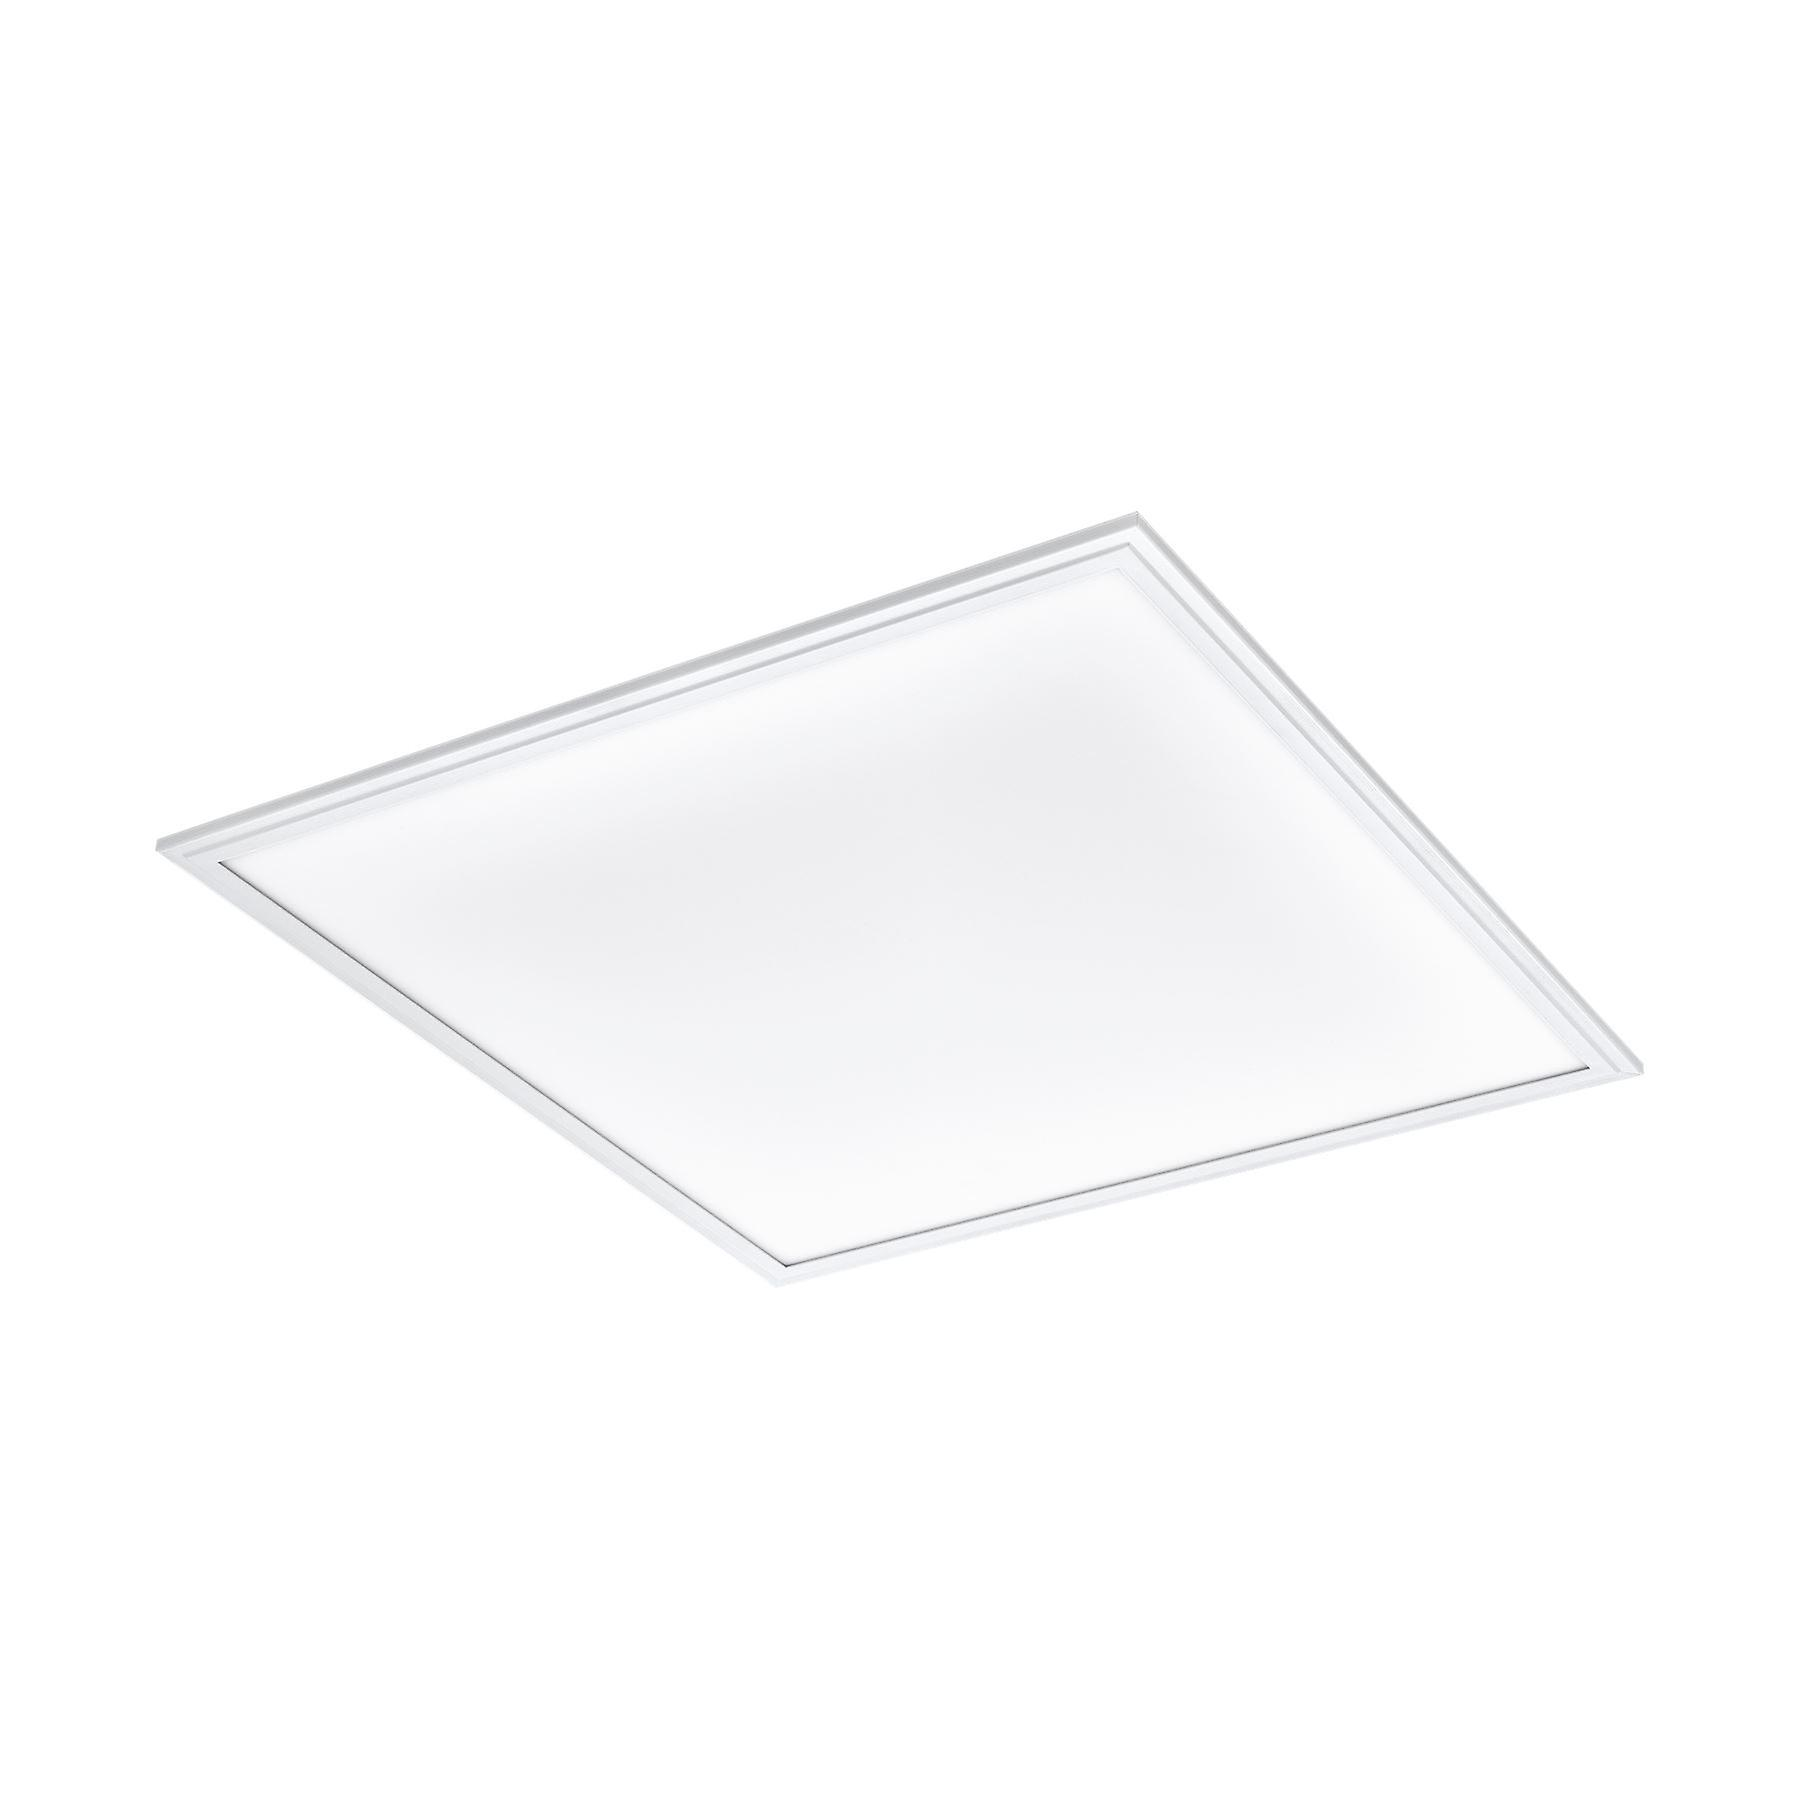 Eglo - Salobrena-C Connect Controlled Tuneable blanc & RGB 600x600 LED Panel EG96663